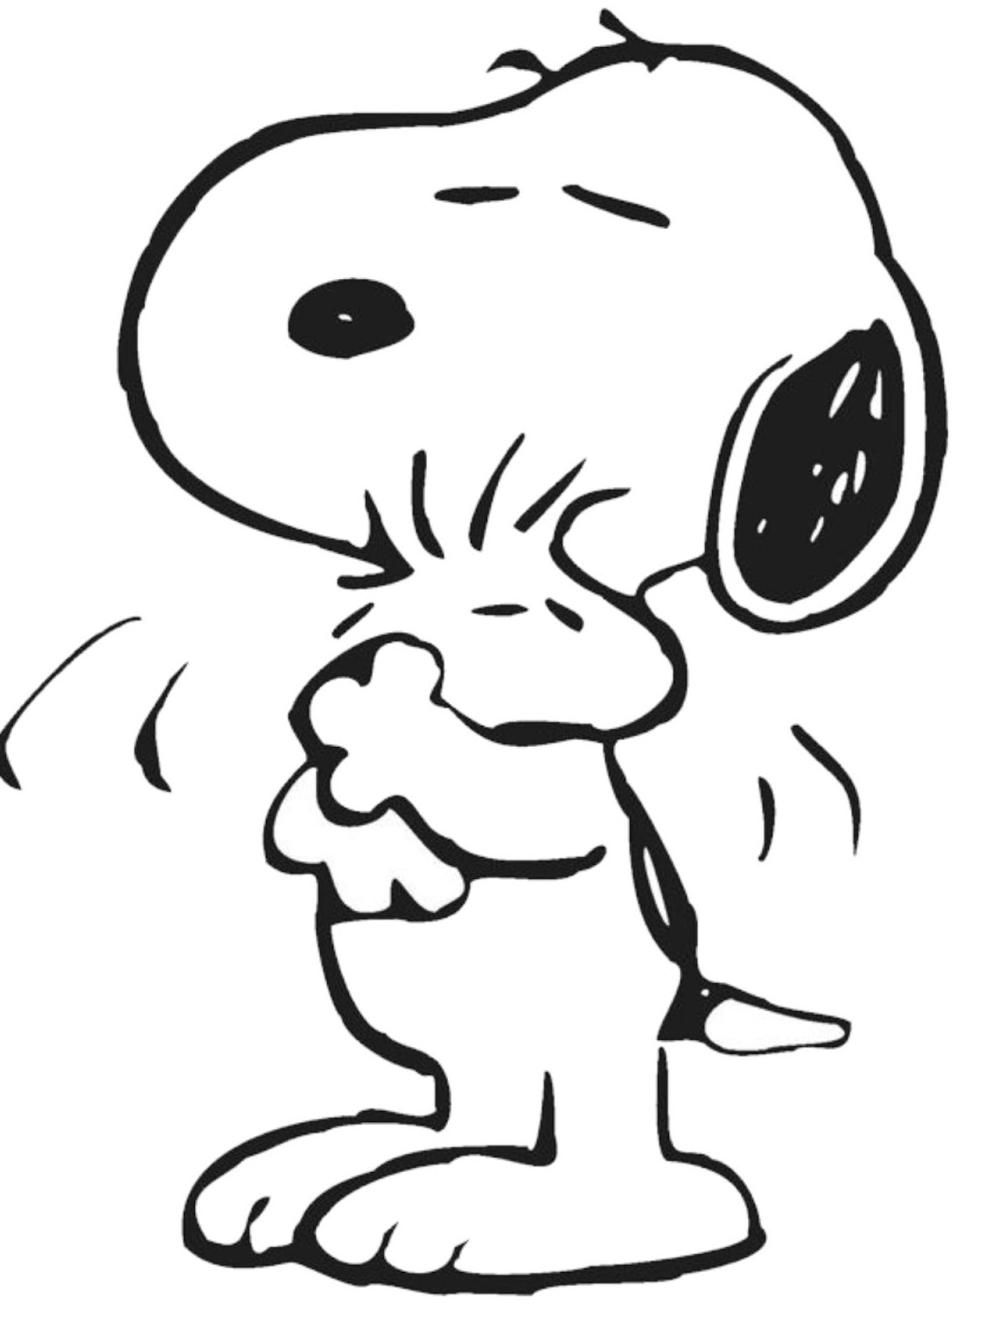 Coloring Pages Charlie Brown Characters Coloring Pages charlie brown characters coloring pages az image hugging love jpg peanuts wiki wikia